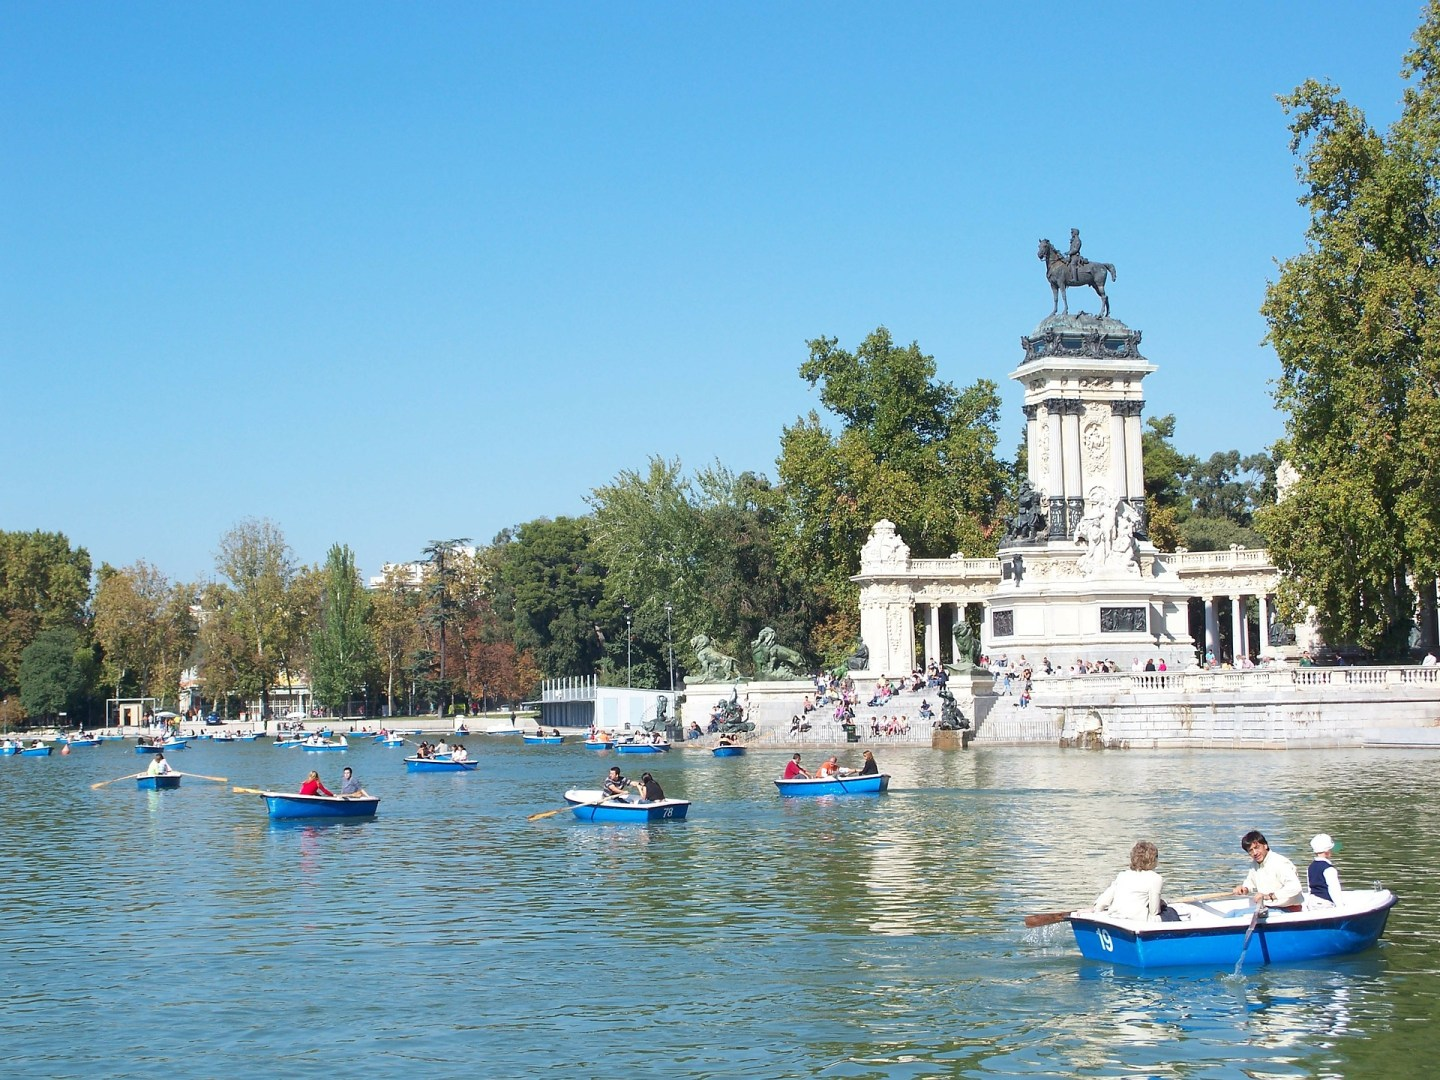 Romantic Madrid - Retiro boating lake